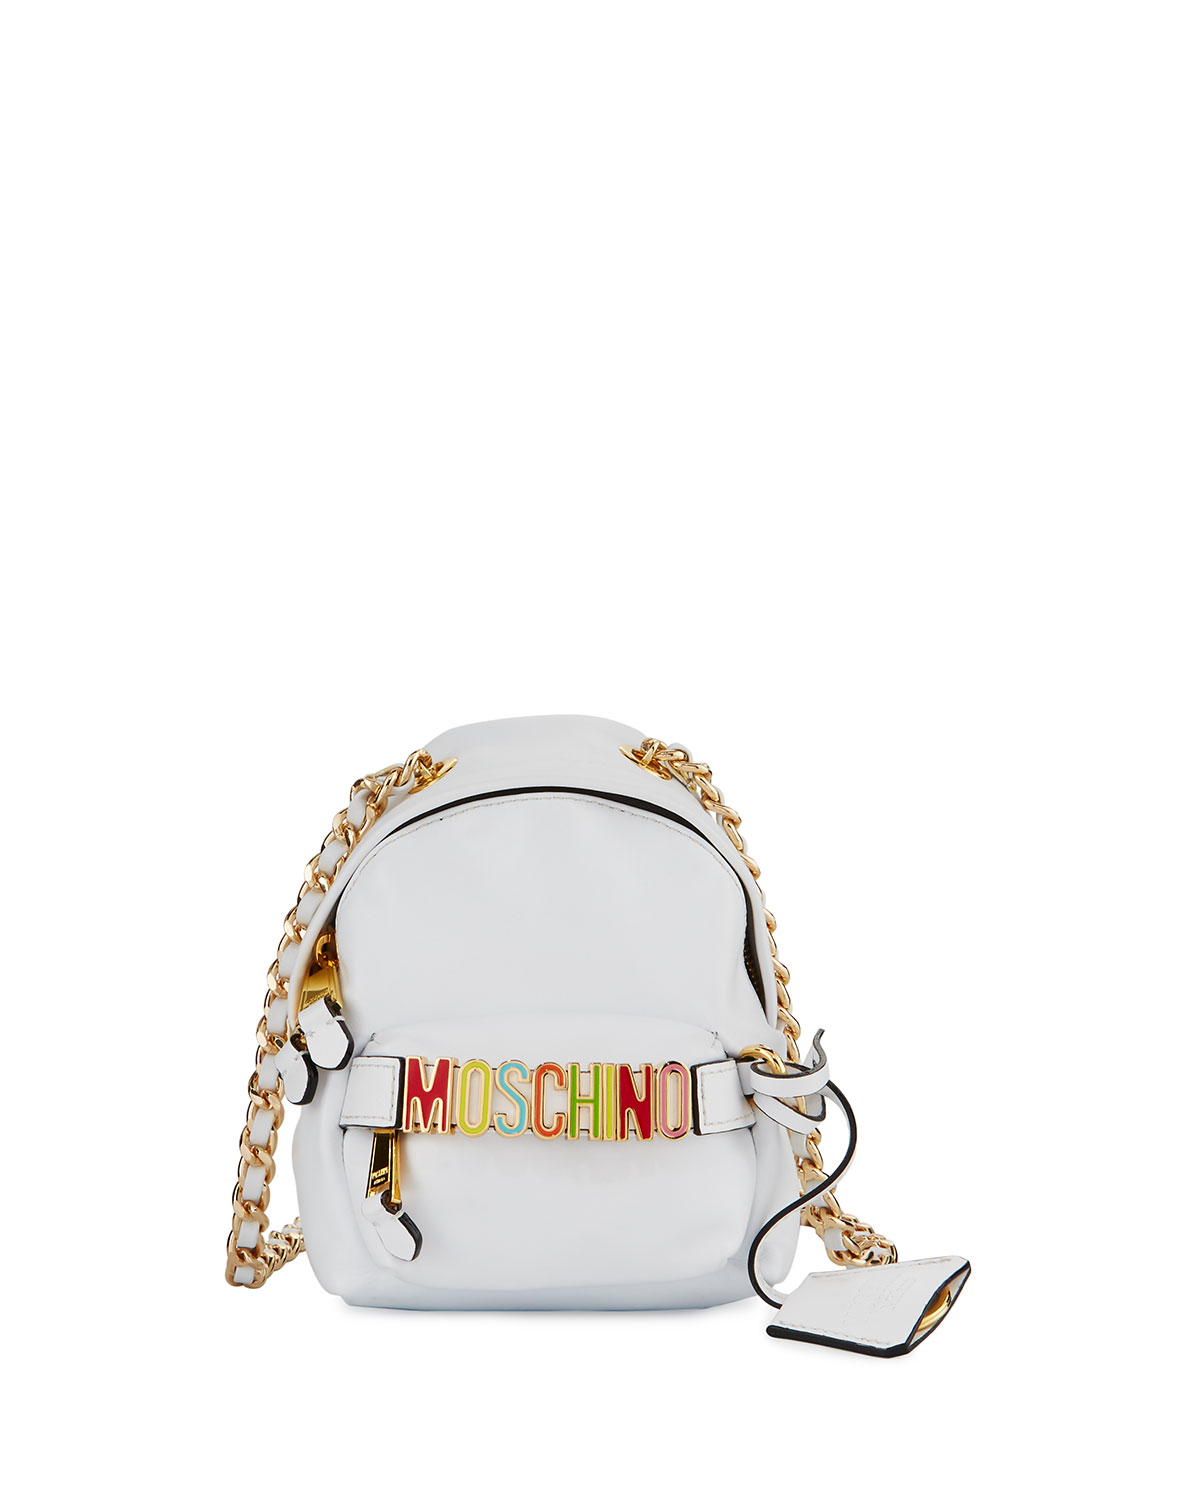 27ee4db552 Moschino Mini Leather Backpack-Shaped Crossbody Bag, White/Multi ...